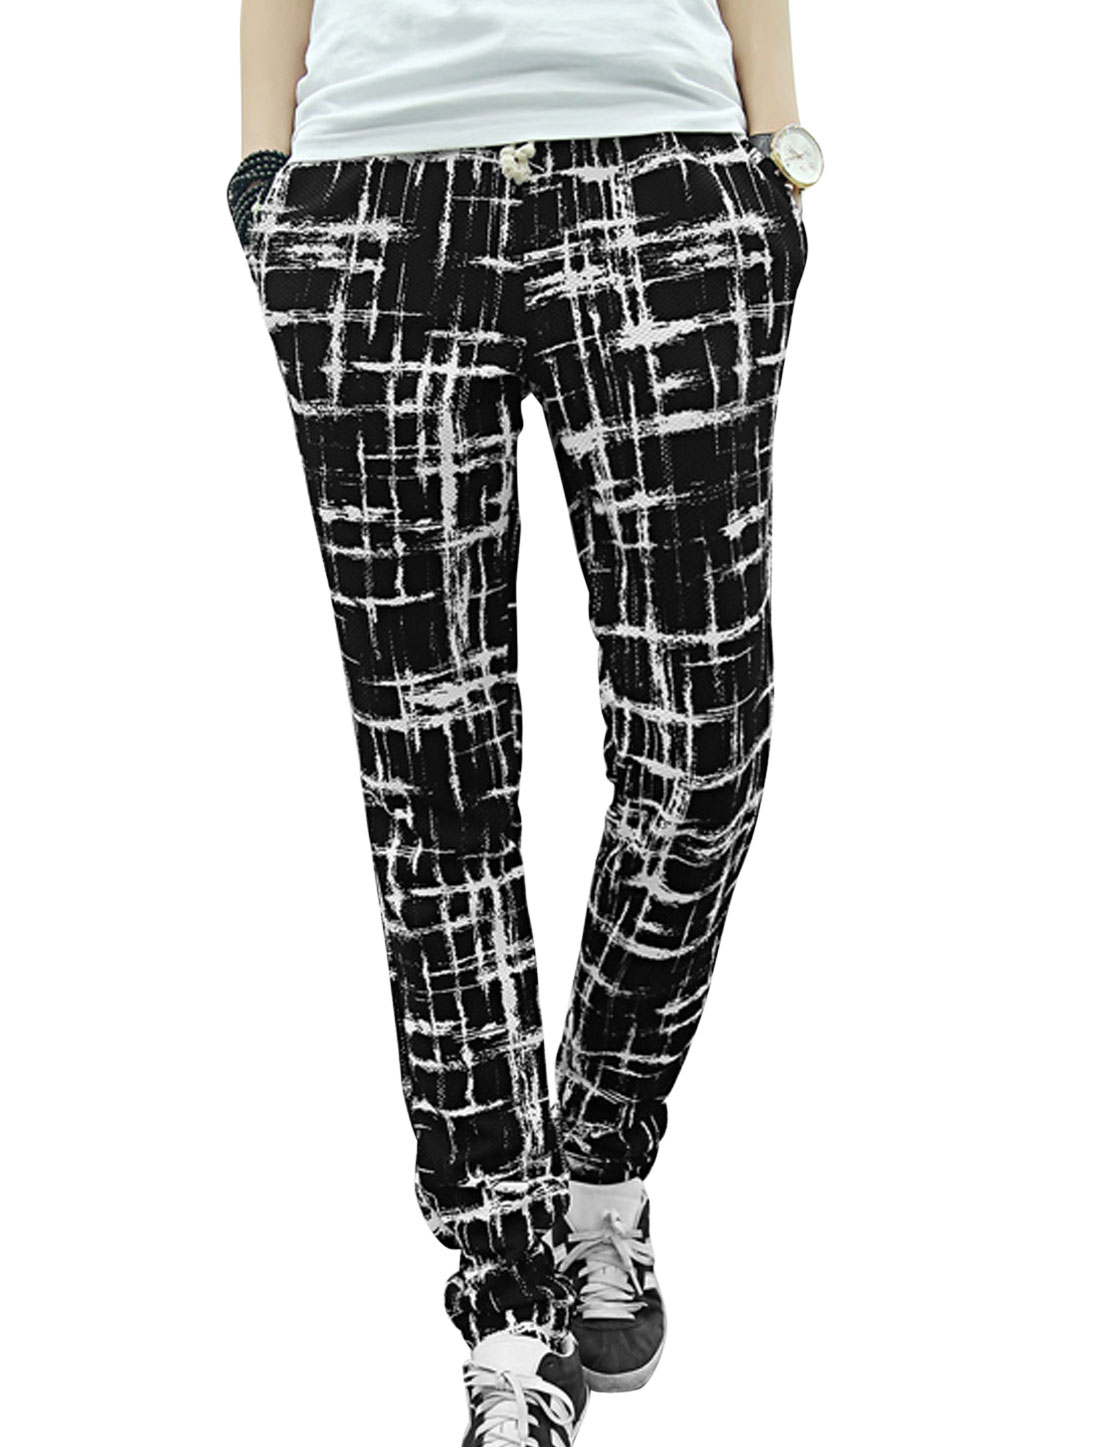 Men Welt Hip Pockets Cuffed All Over Novelty Print Casual Pants Black W30